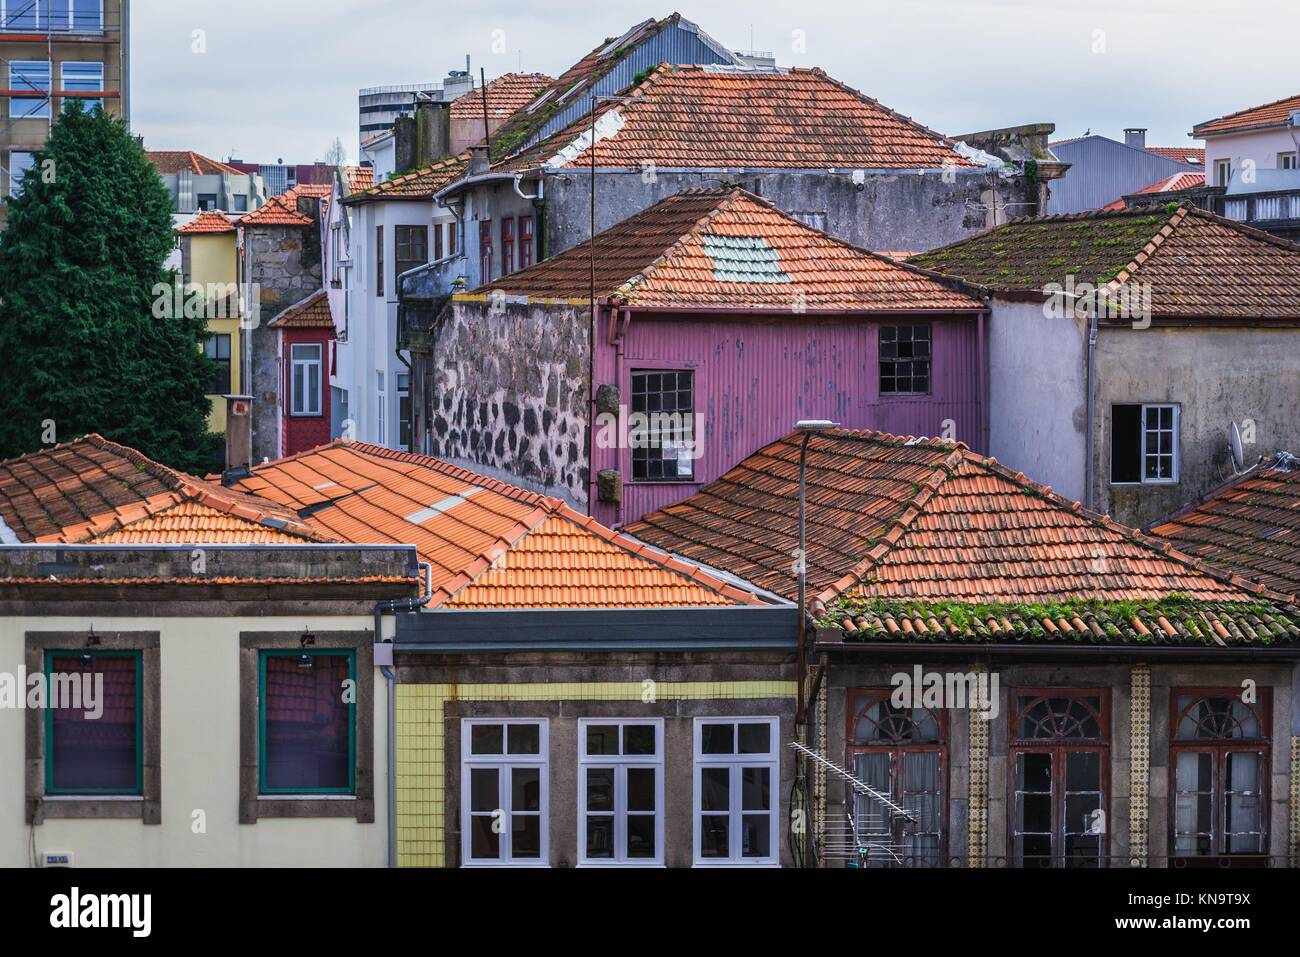 Old apartment buildings in Santo Ildefonso district of Porto city on Iberian Peninsula, second largest city in Portugal. - Stock Image